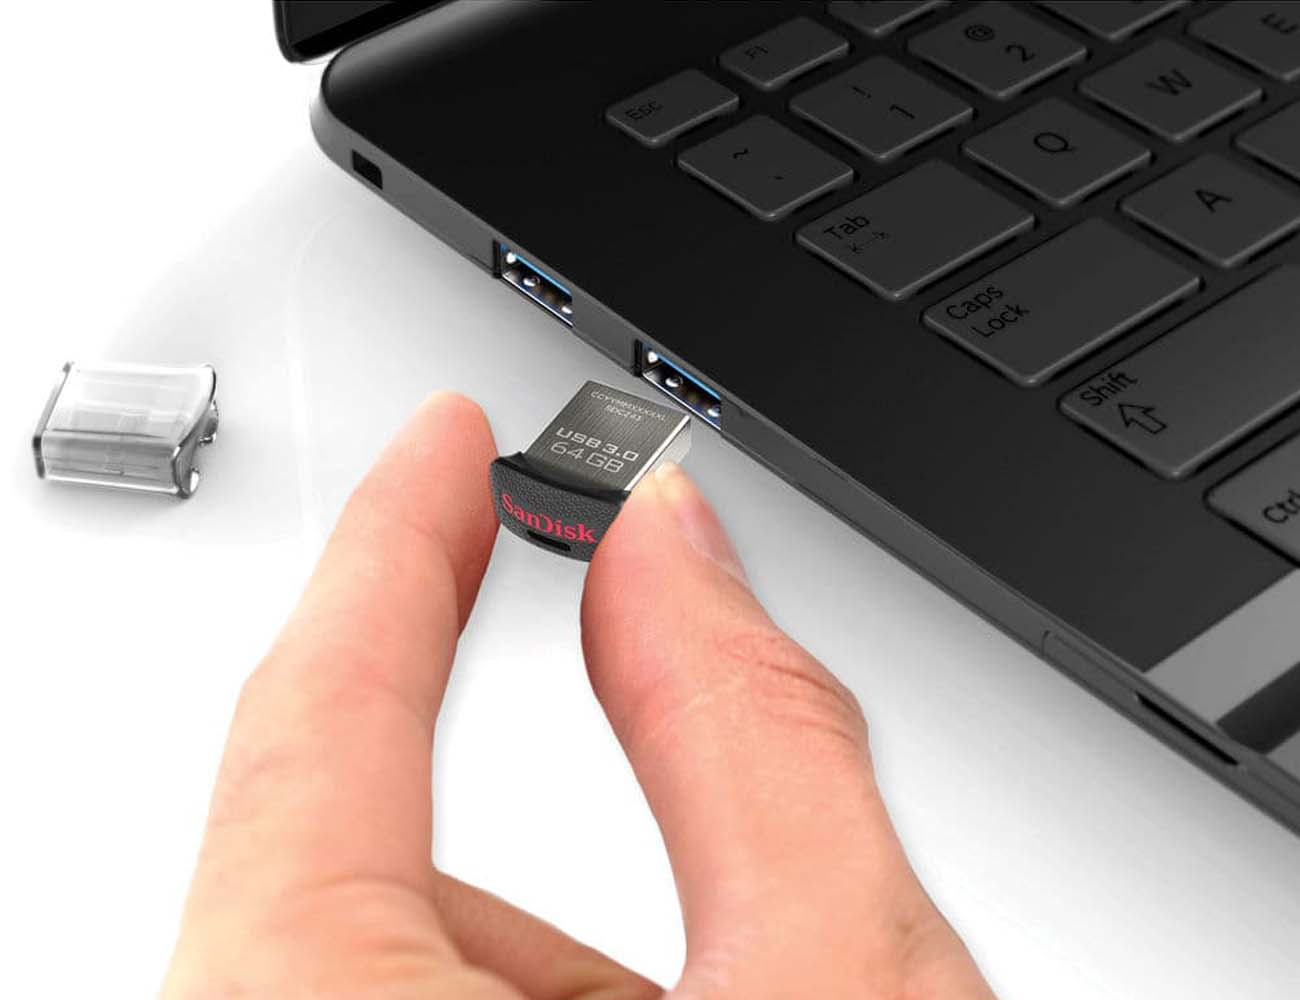 World's Smallest USB 3 Flash Drive By SanDisk